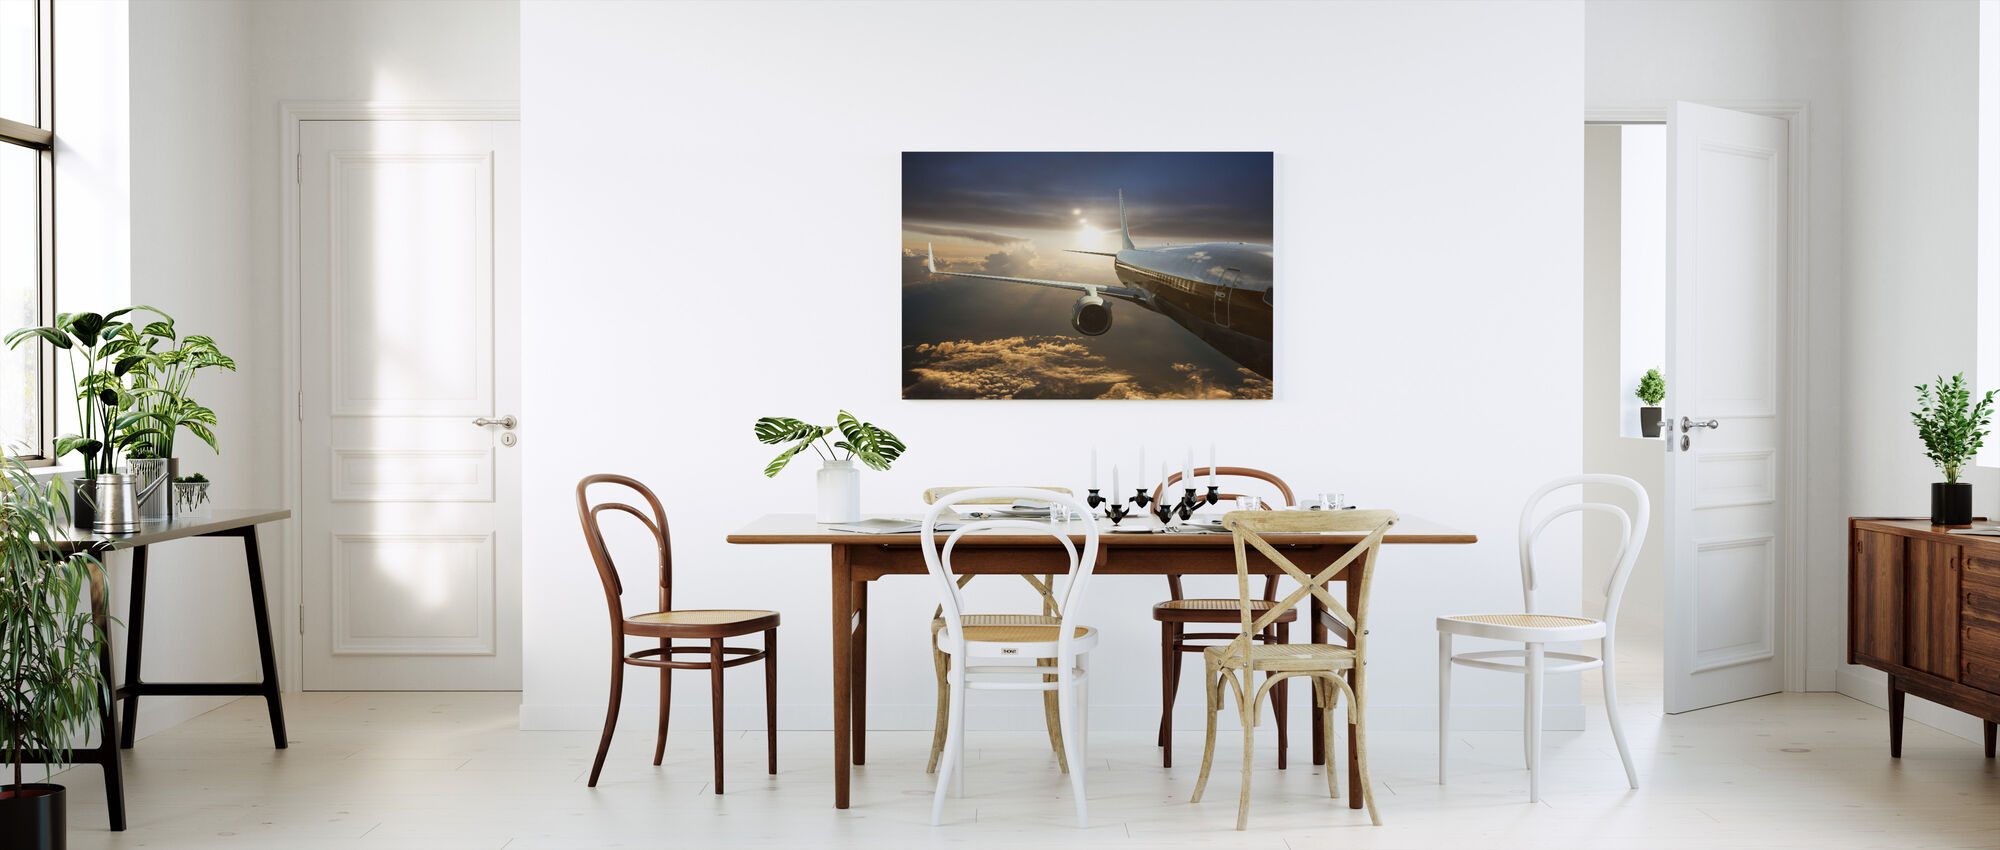 Airplane above Clouds - Canvas print - Kitchen